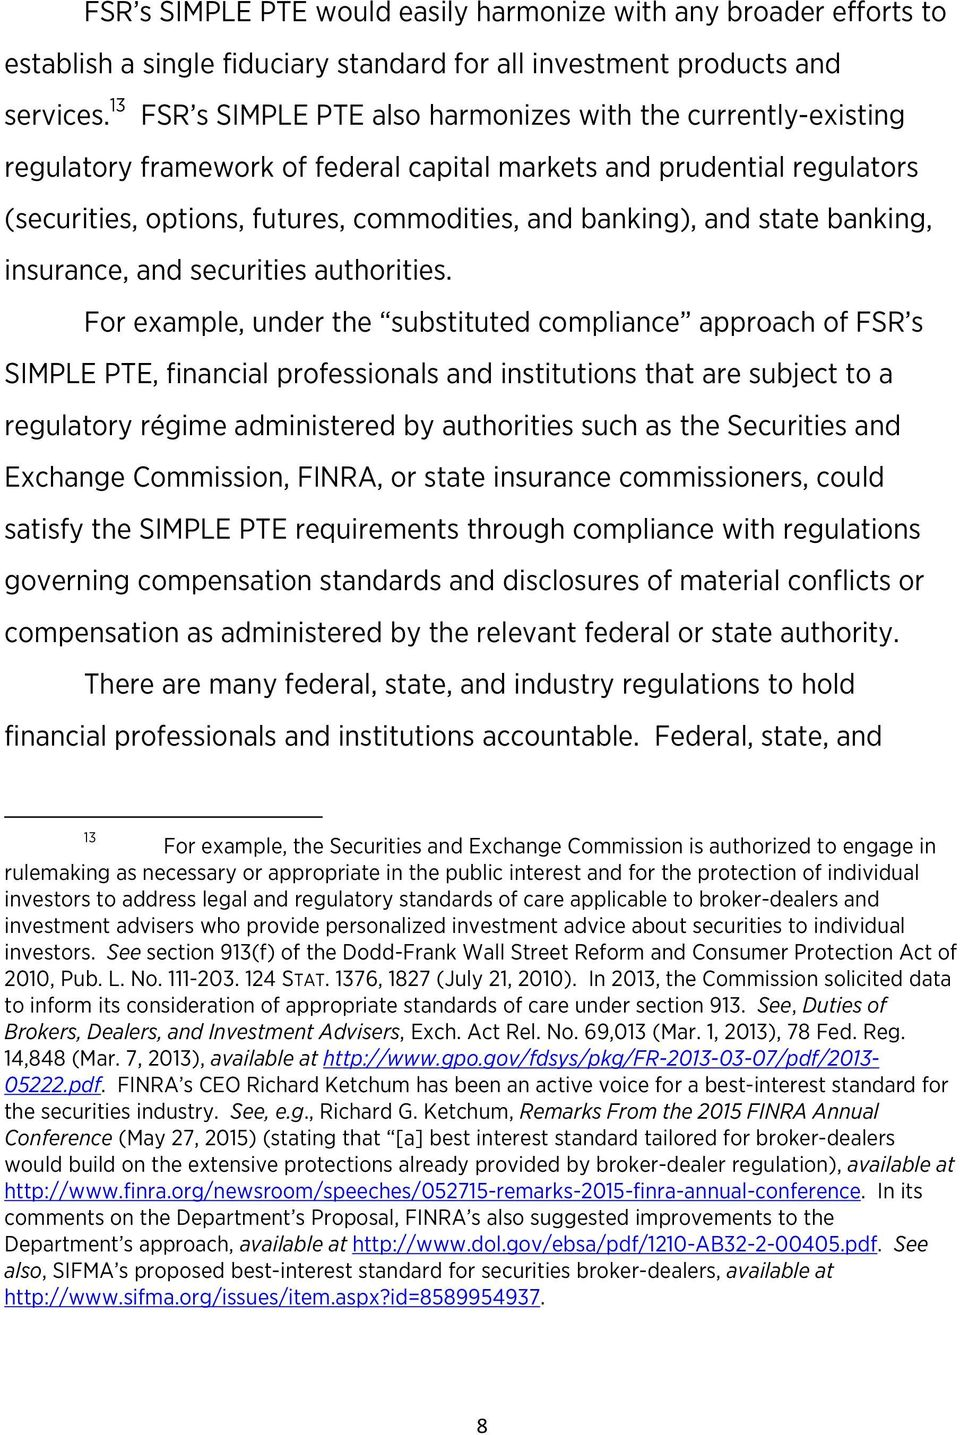 state banking, insurance, and securities authorities.